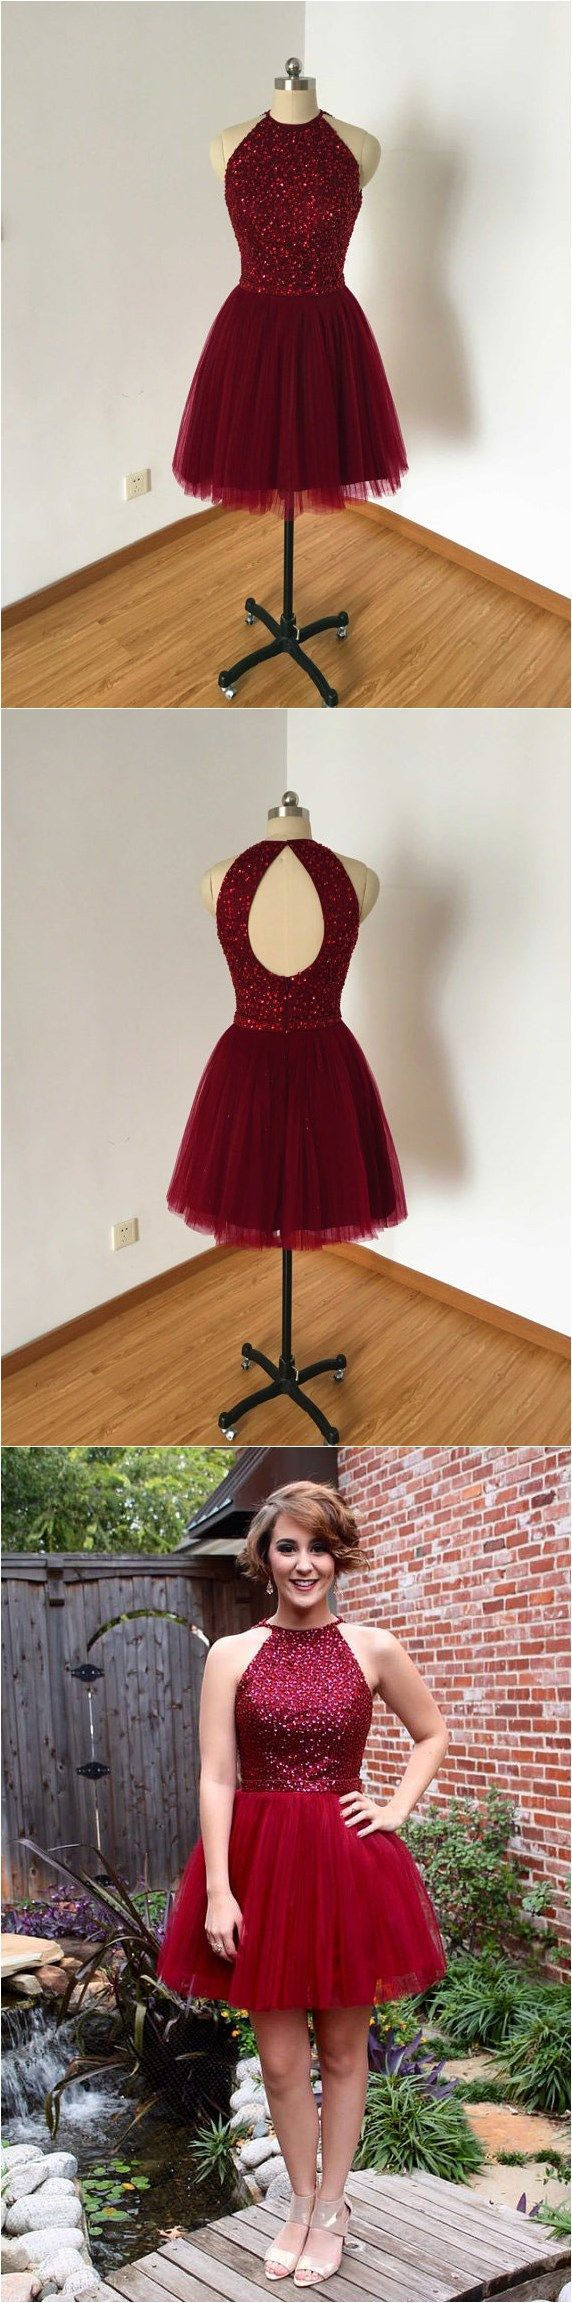 Burgundy tulle beaded bodice homecoming dresses,open back short prom dresses,2017 homecoming dresses